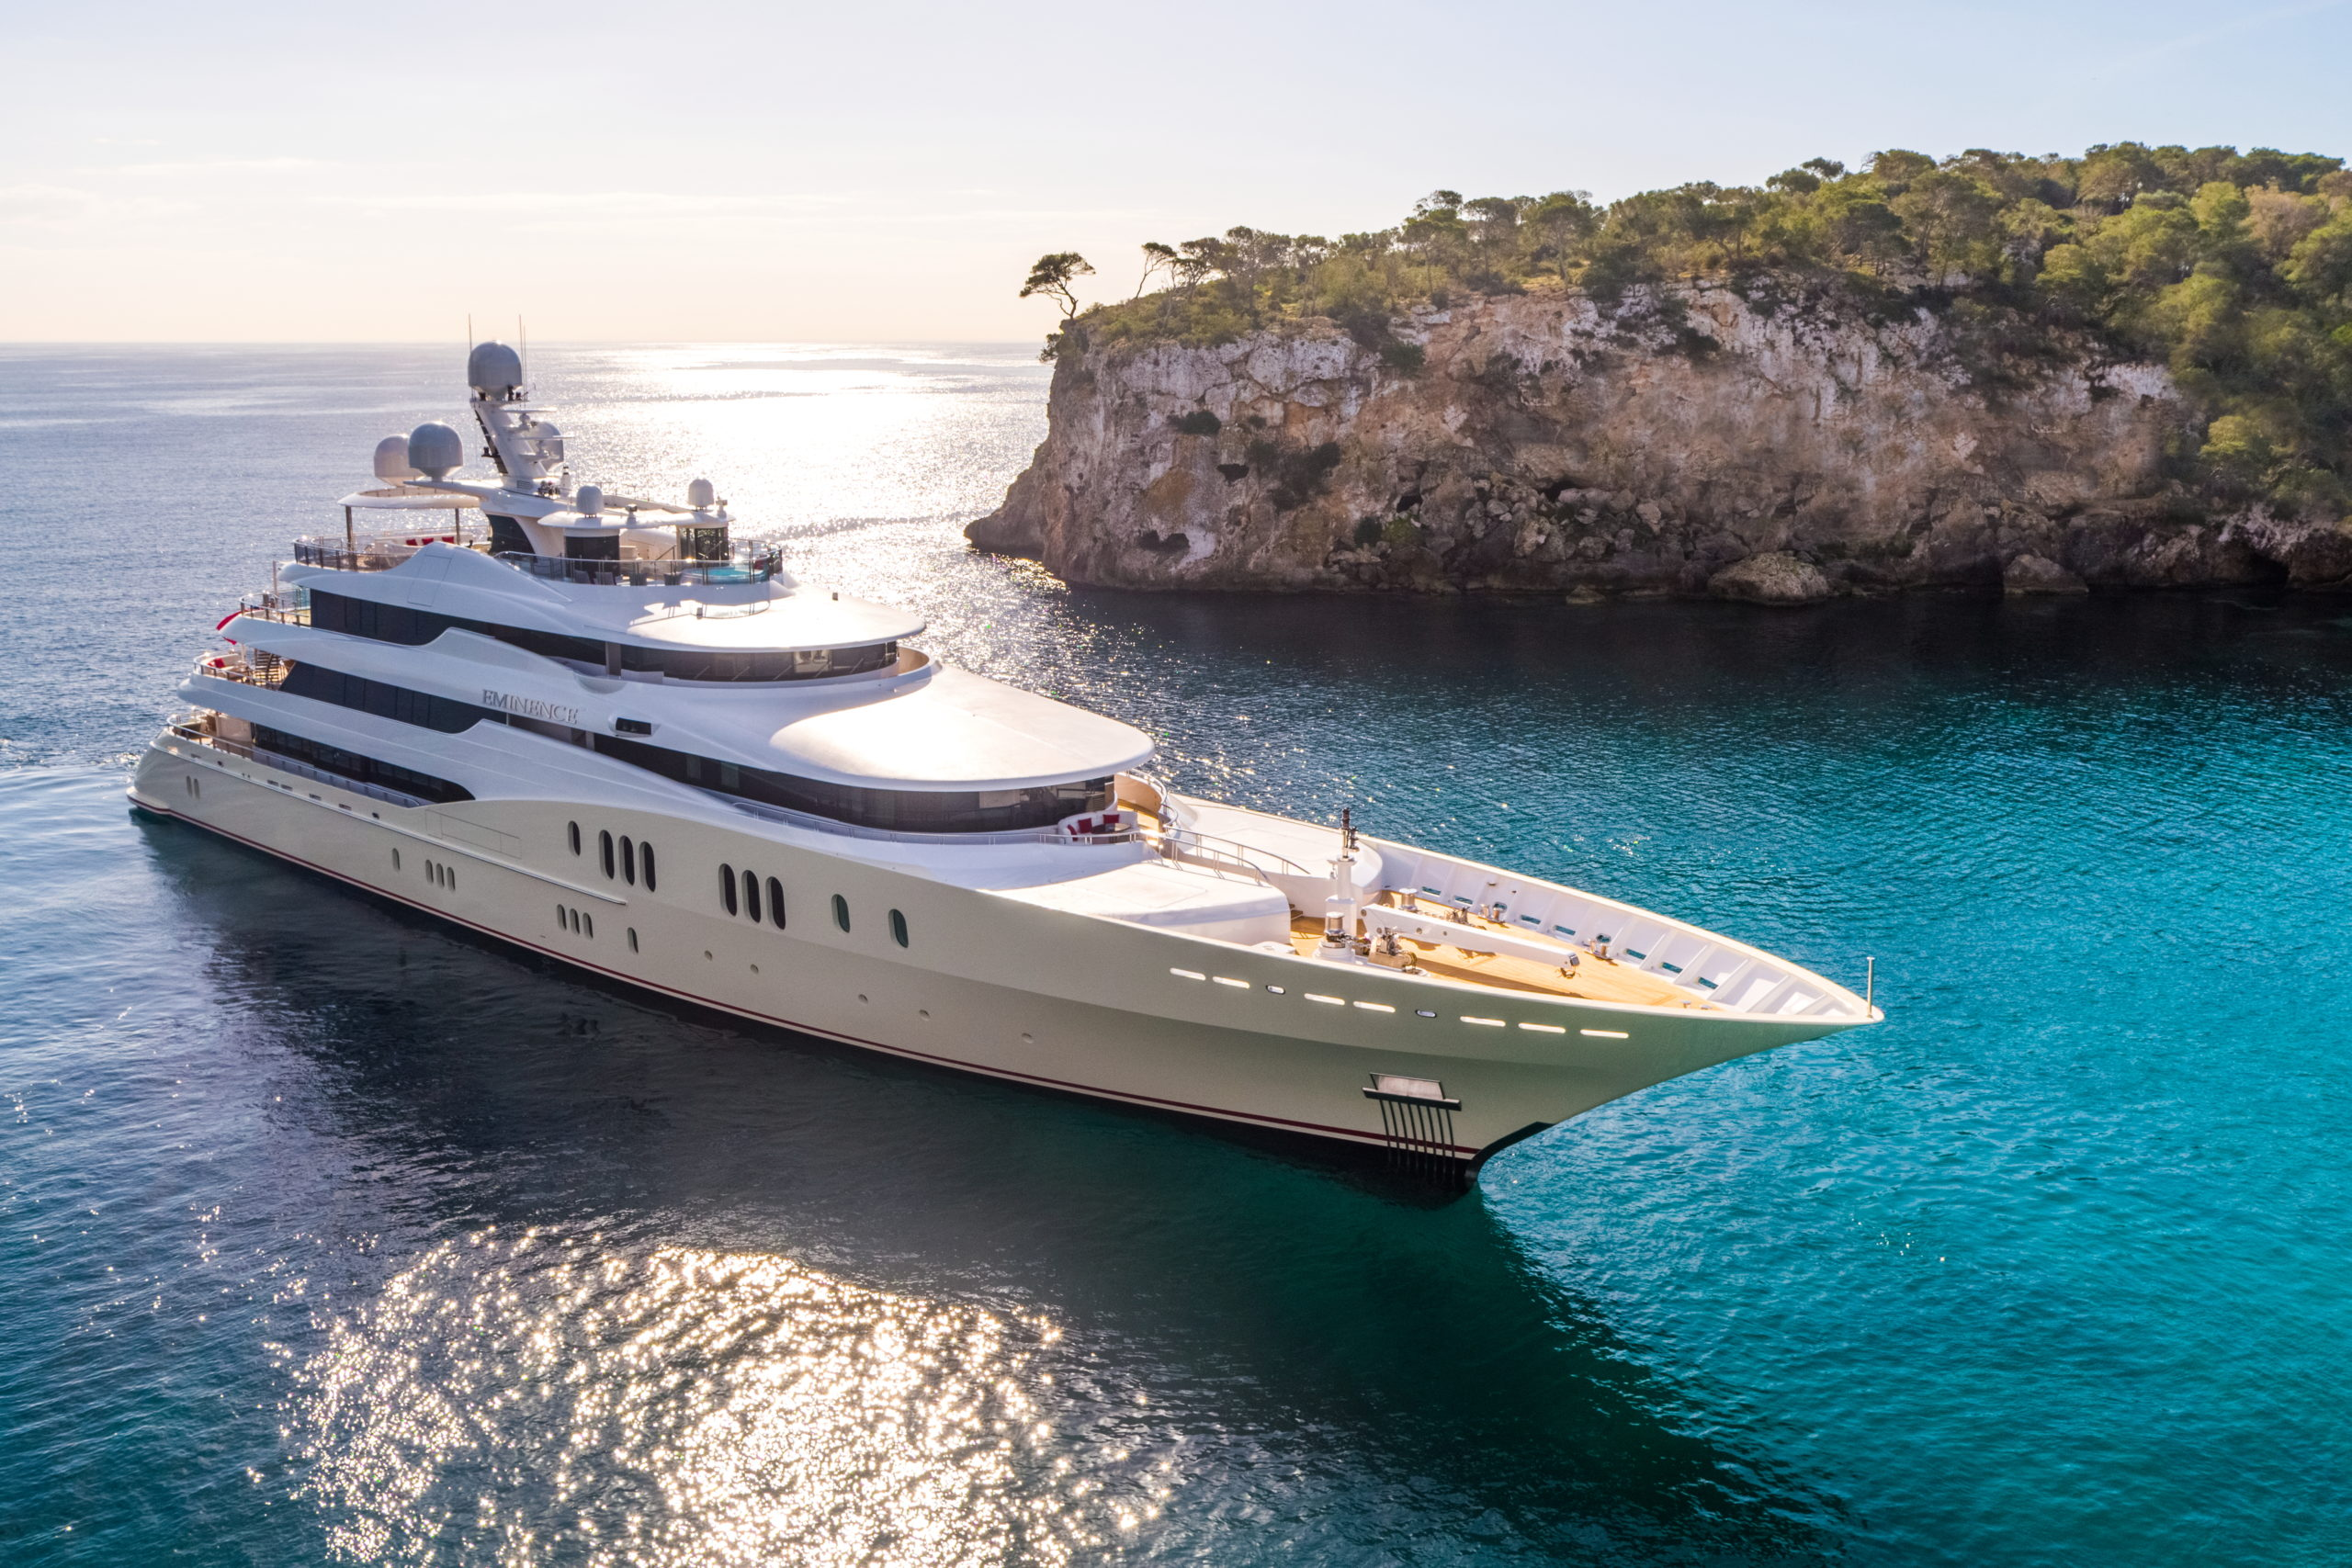 M/Y Eminence launches website